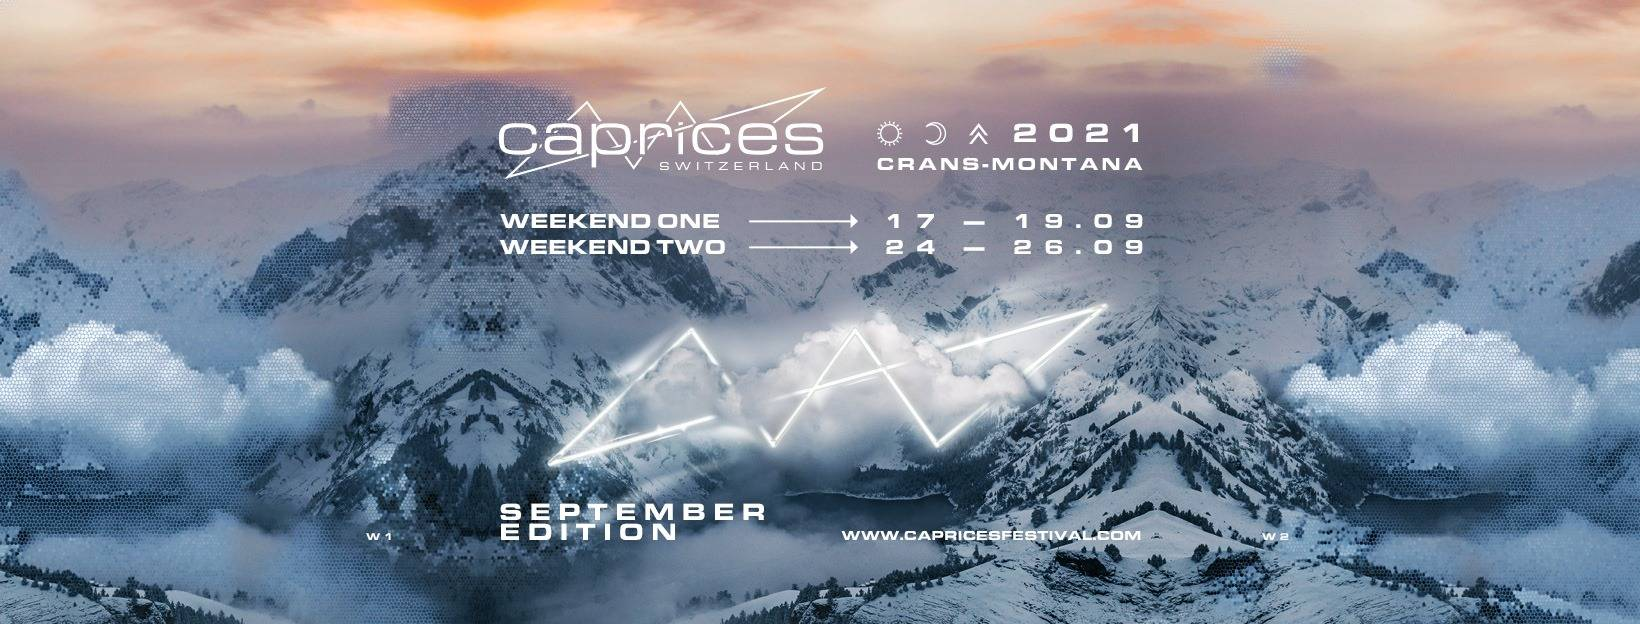 Caprices Festival will have its 2021 edition in September